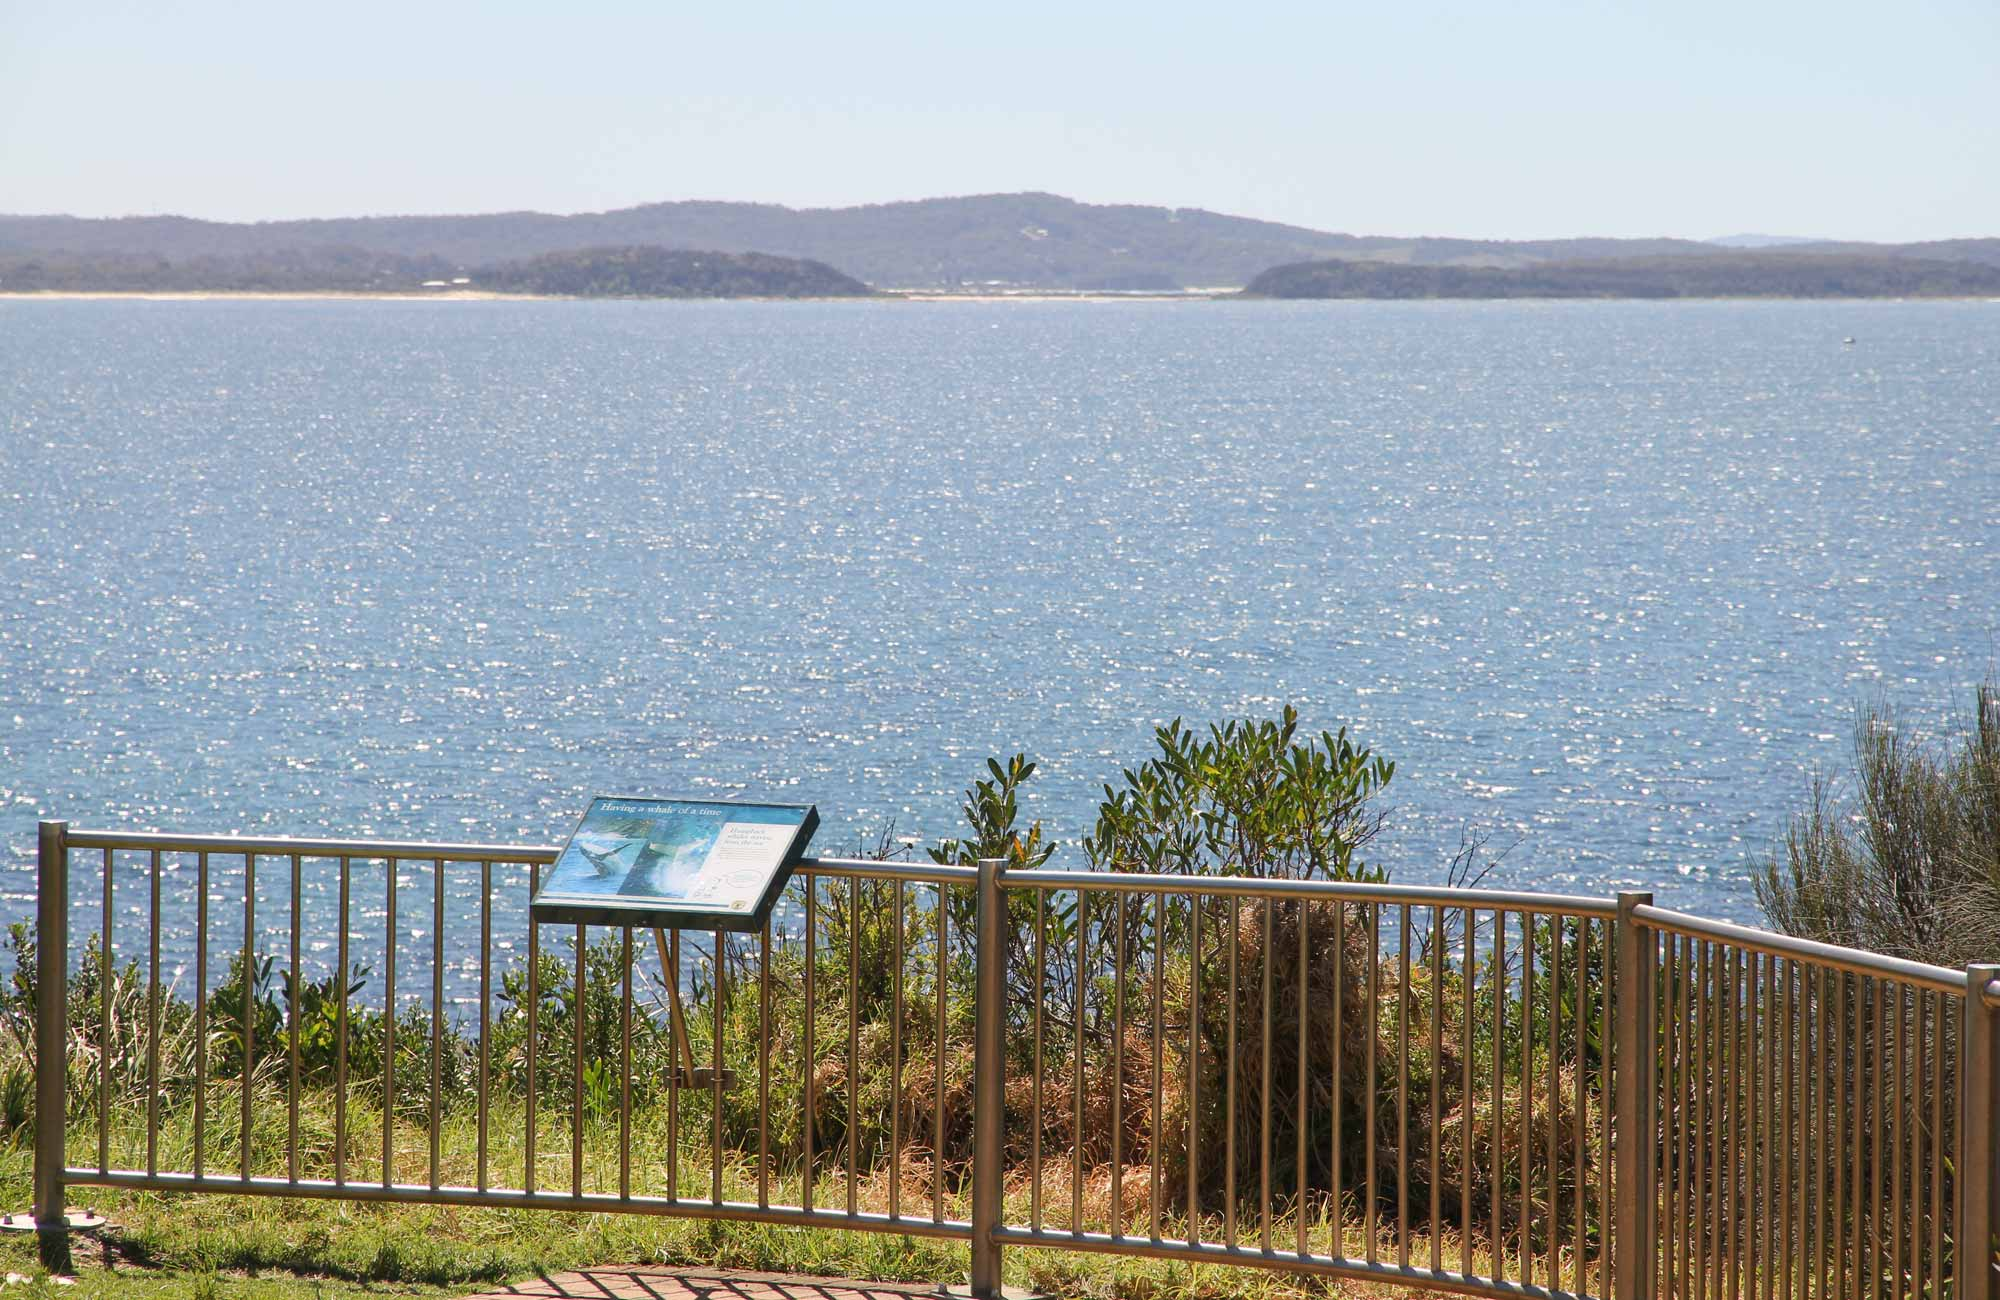 Moruya Heads lookout, Eurobodalla National Park. Photo: Tristan Ricketson